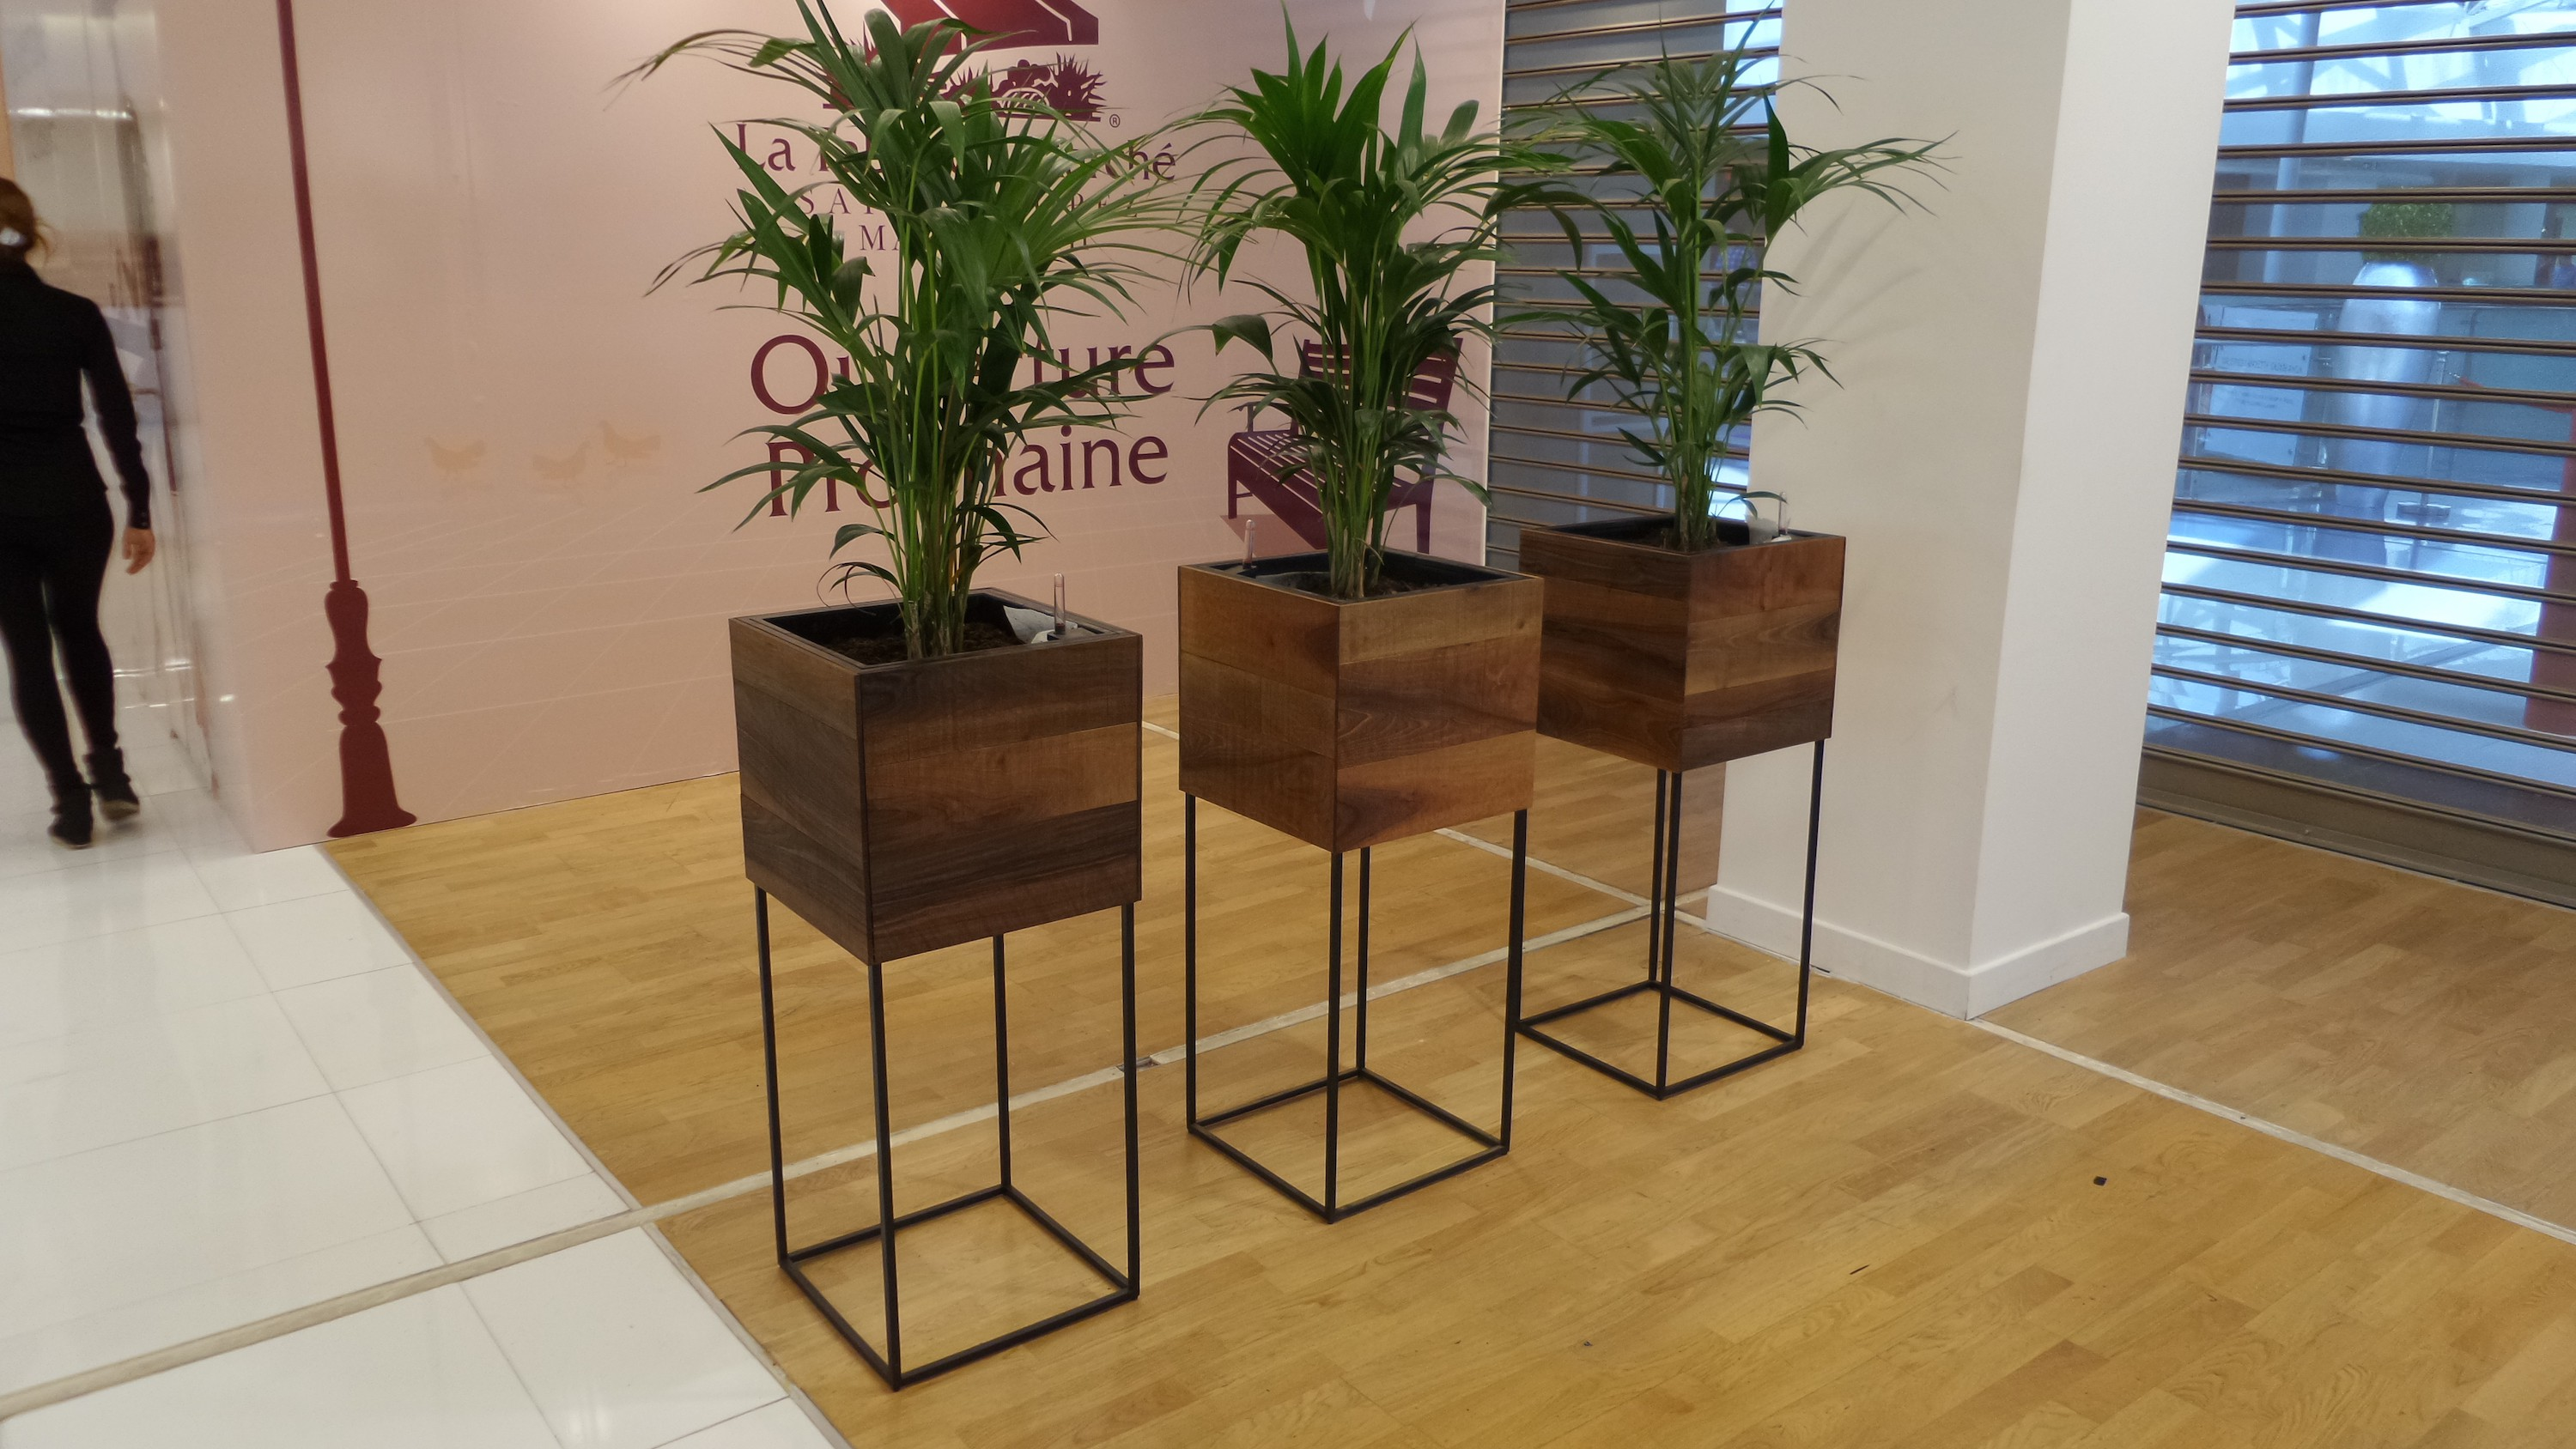 walnut and metal plant stands